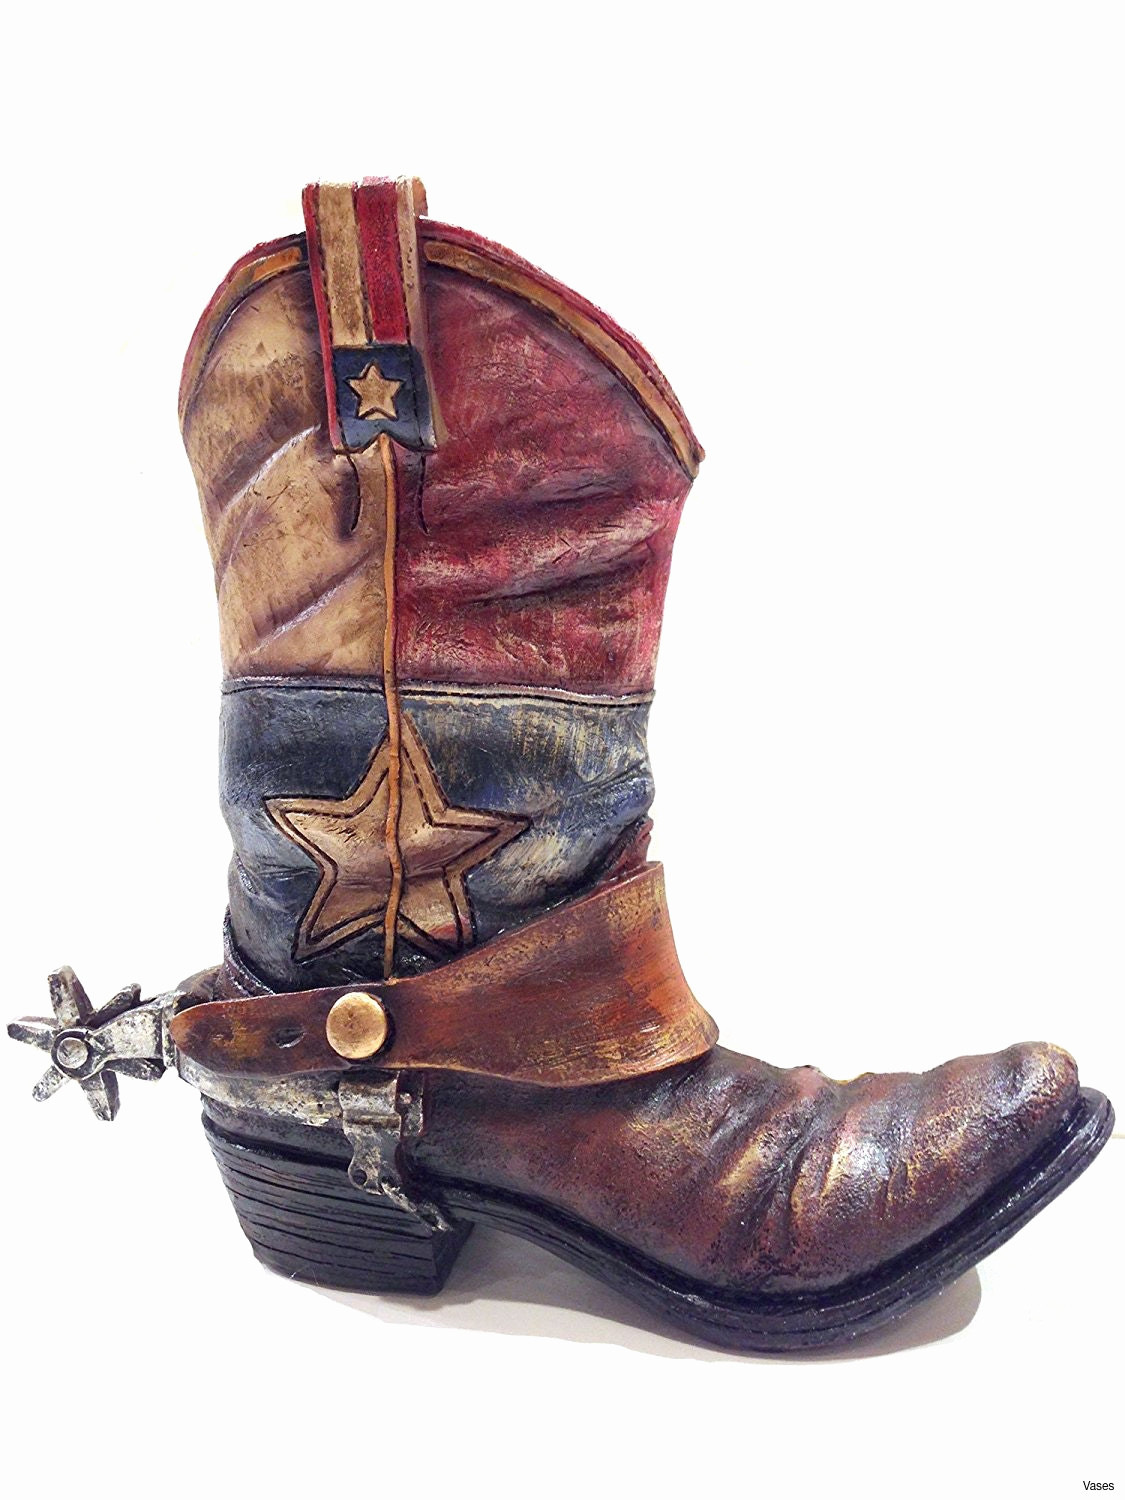 13 Stylish Cowboy Boot Vases wholesale 2021 free download cowboy boot vases wholesale of decoration western beau super soft western decor pillow with leather within decoration western unique western cowboy boot vases 2h vasesi 0d centerpieces in bu